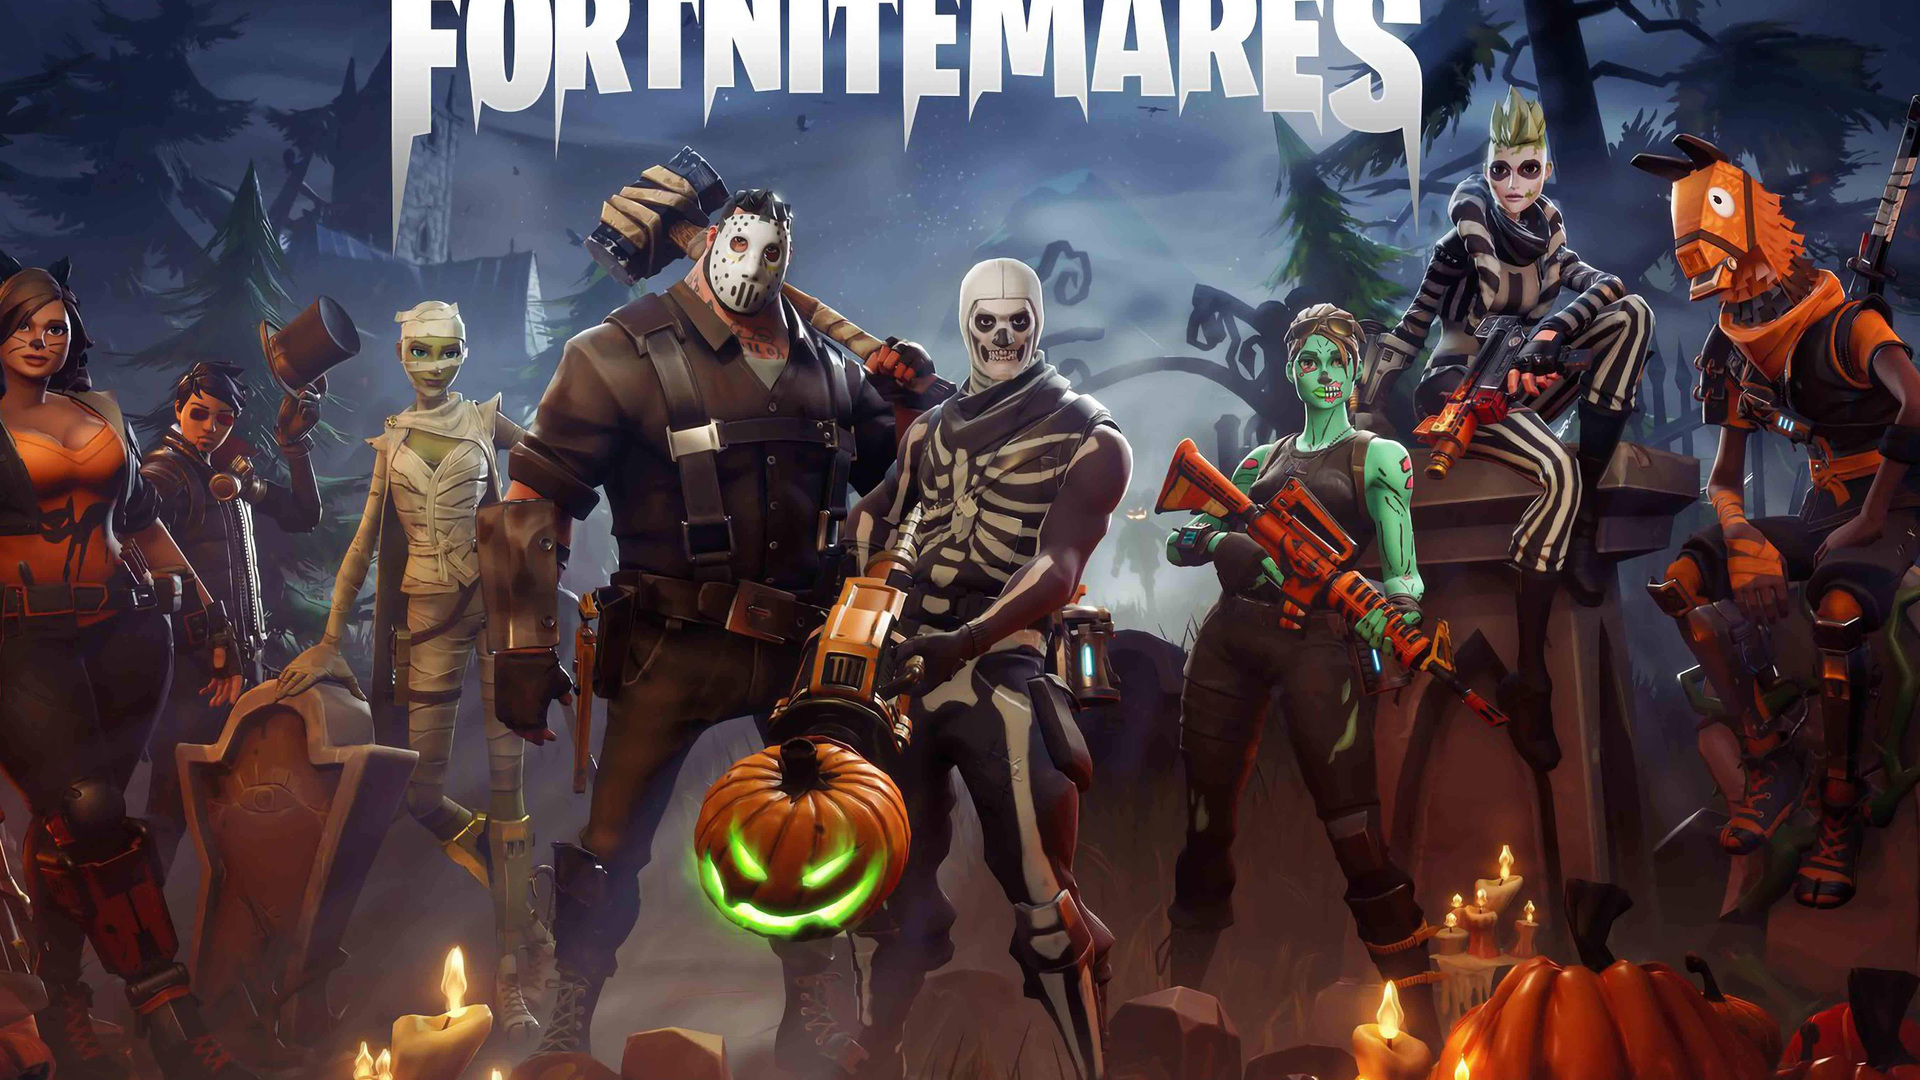 The 25 Best Fortnite Halloween Costumes for kids (and adults)